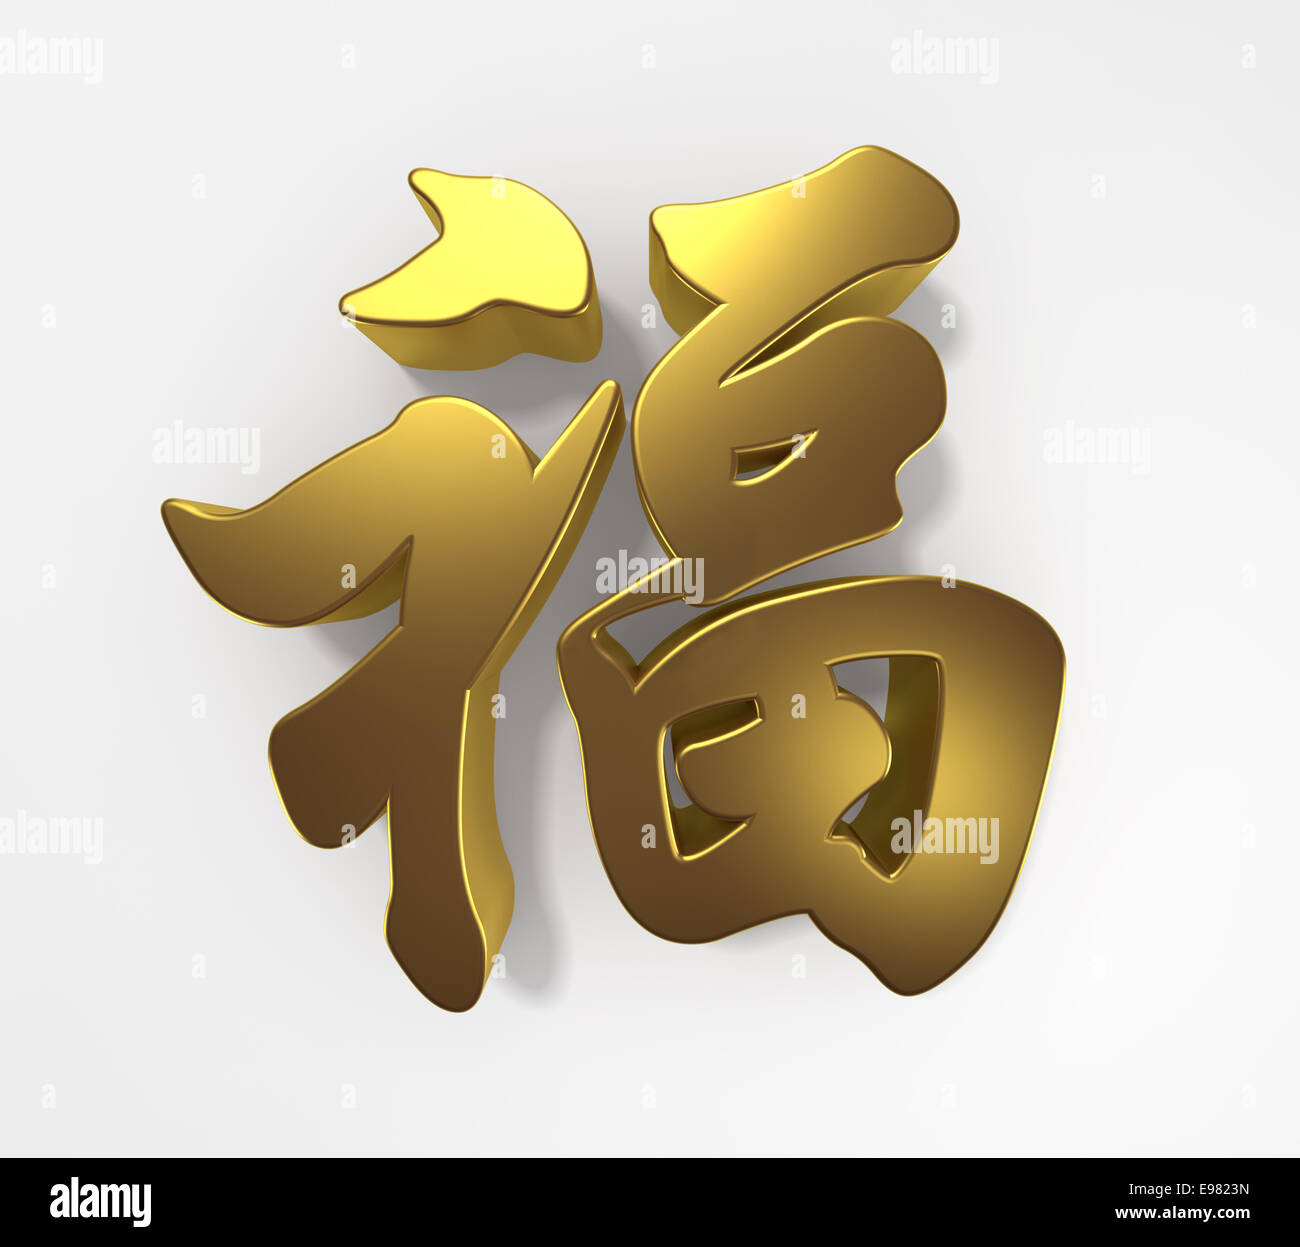 Golden Chinese Character Fu Which Means Good Luck Blessing Is